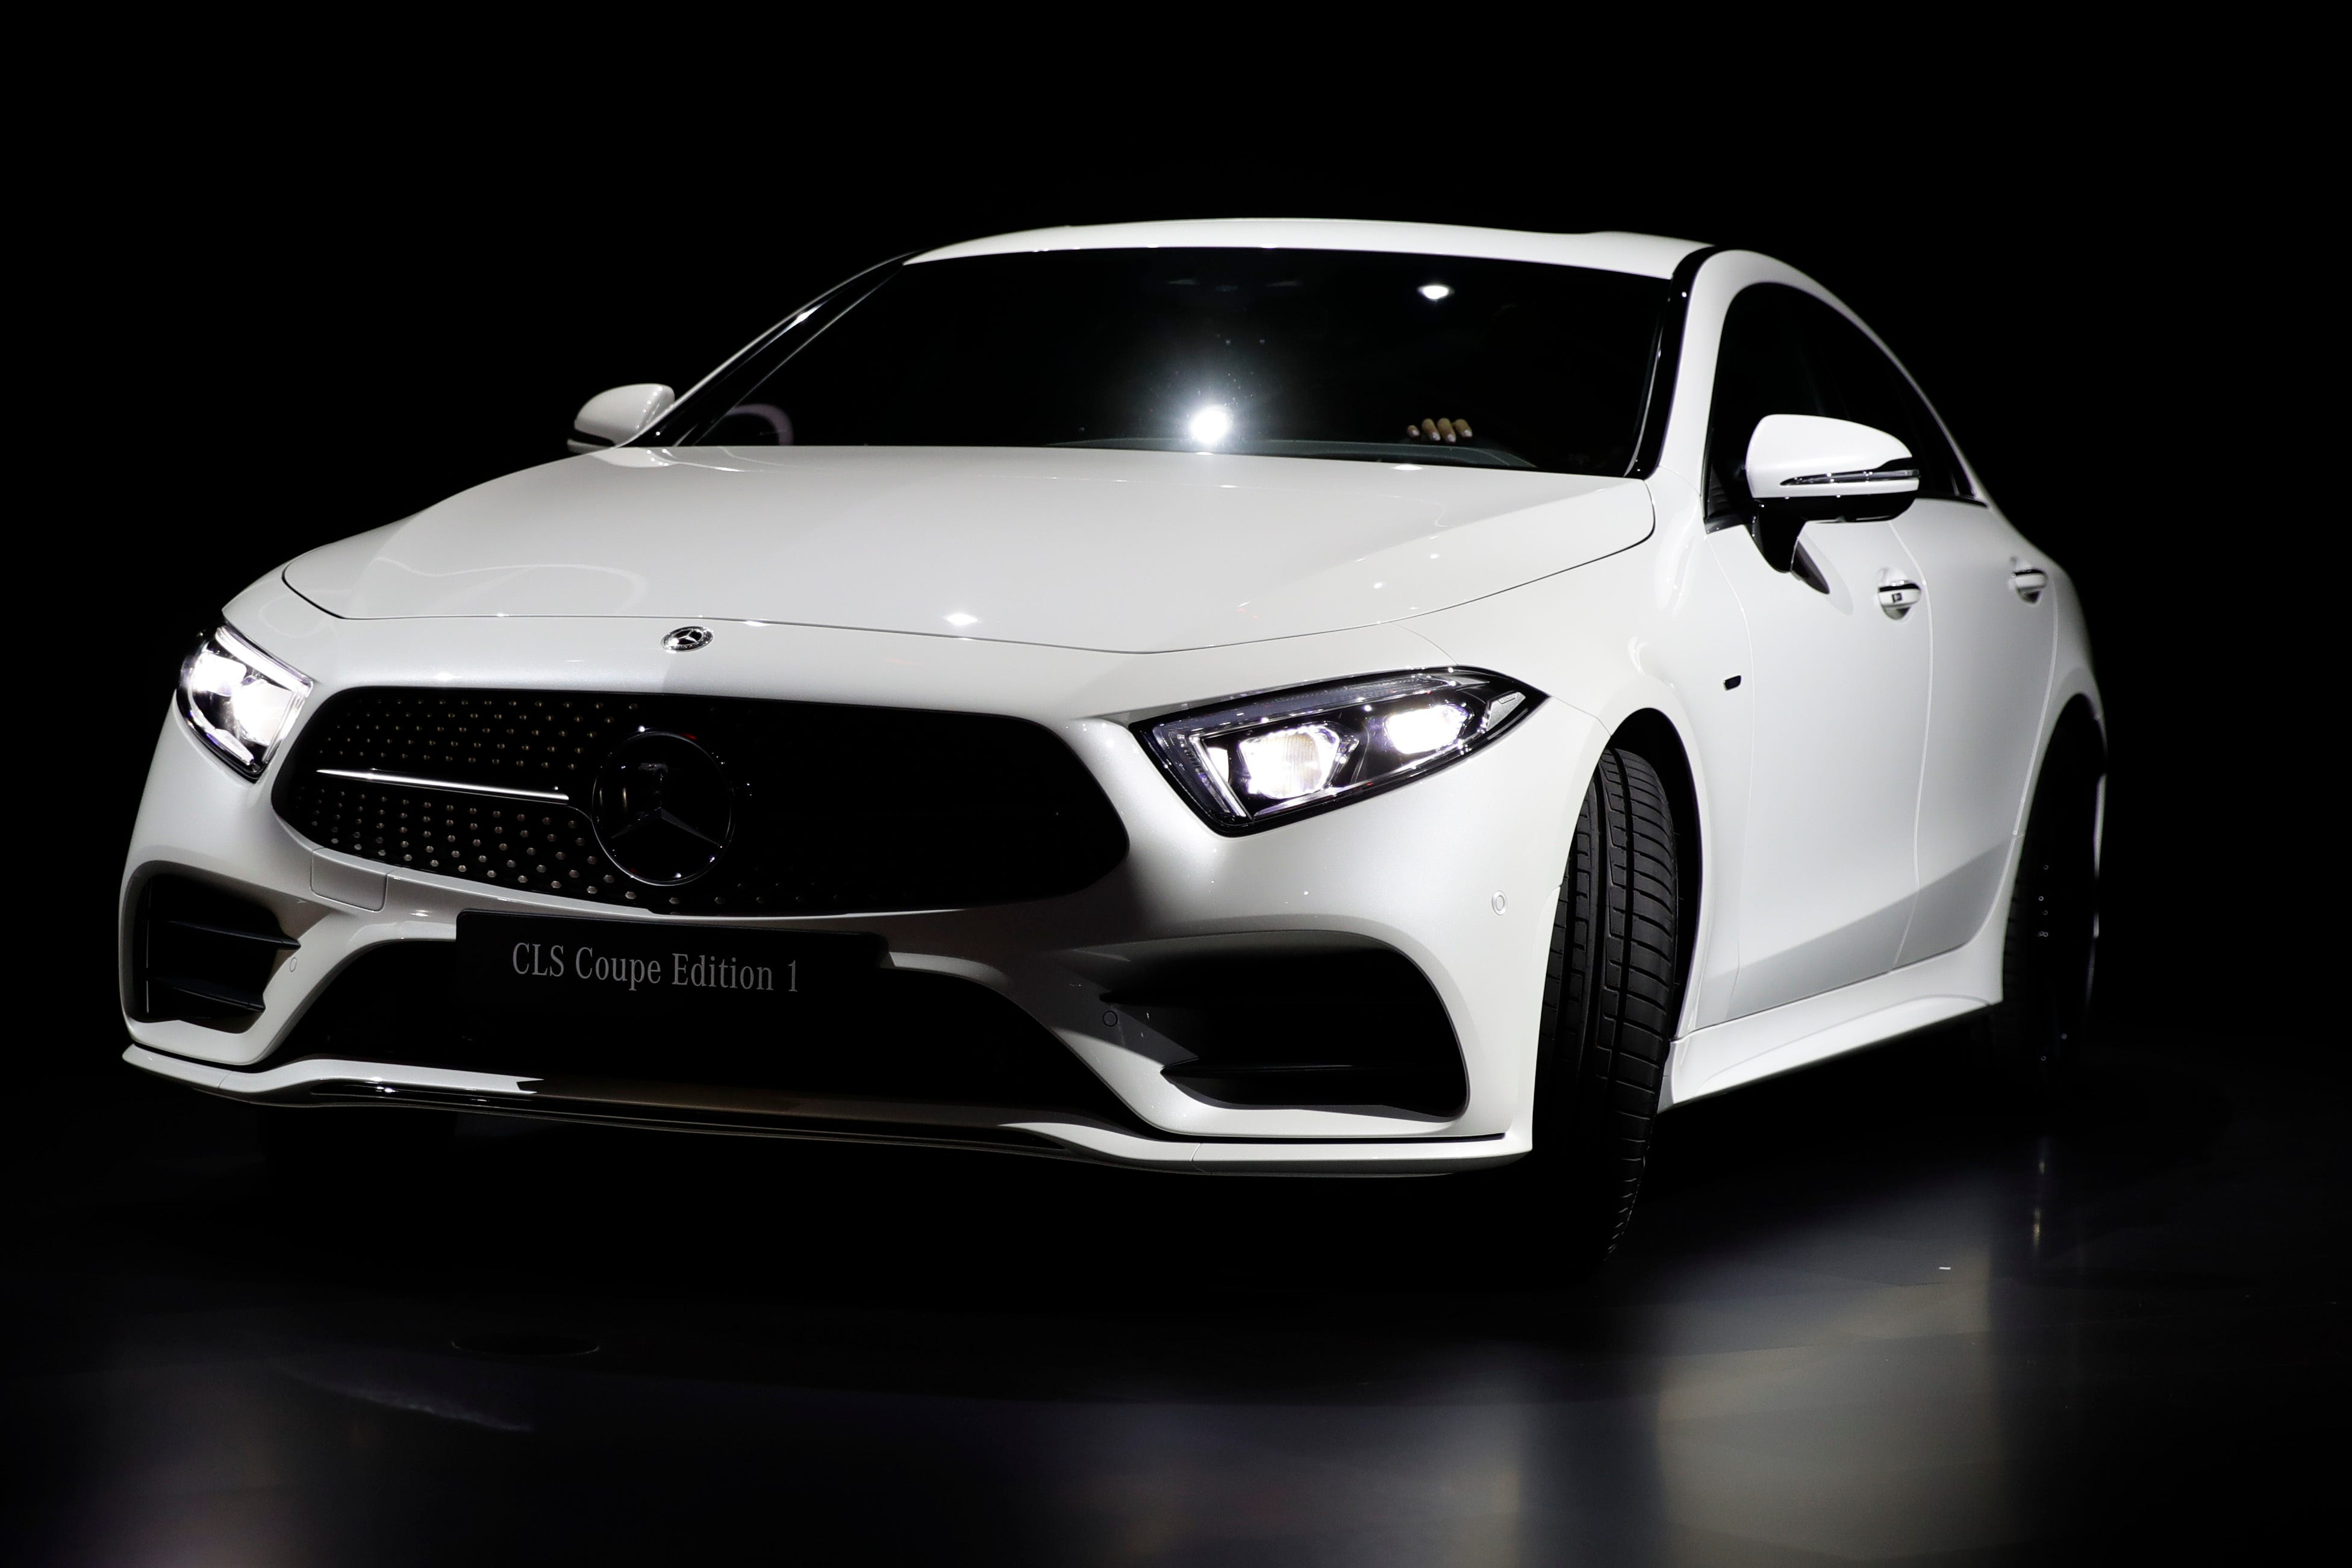 The 2019 Mercedes-Benz CLS coupe is revealed during